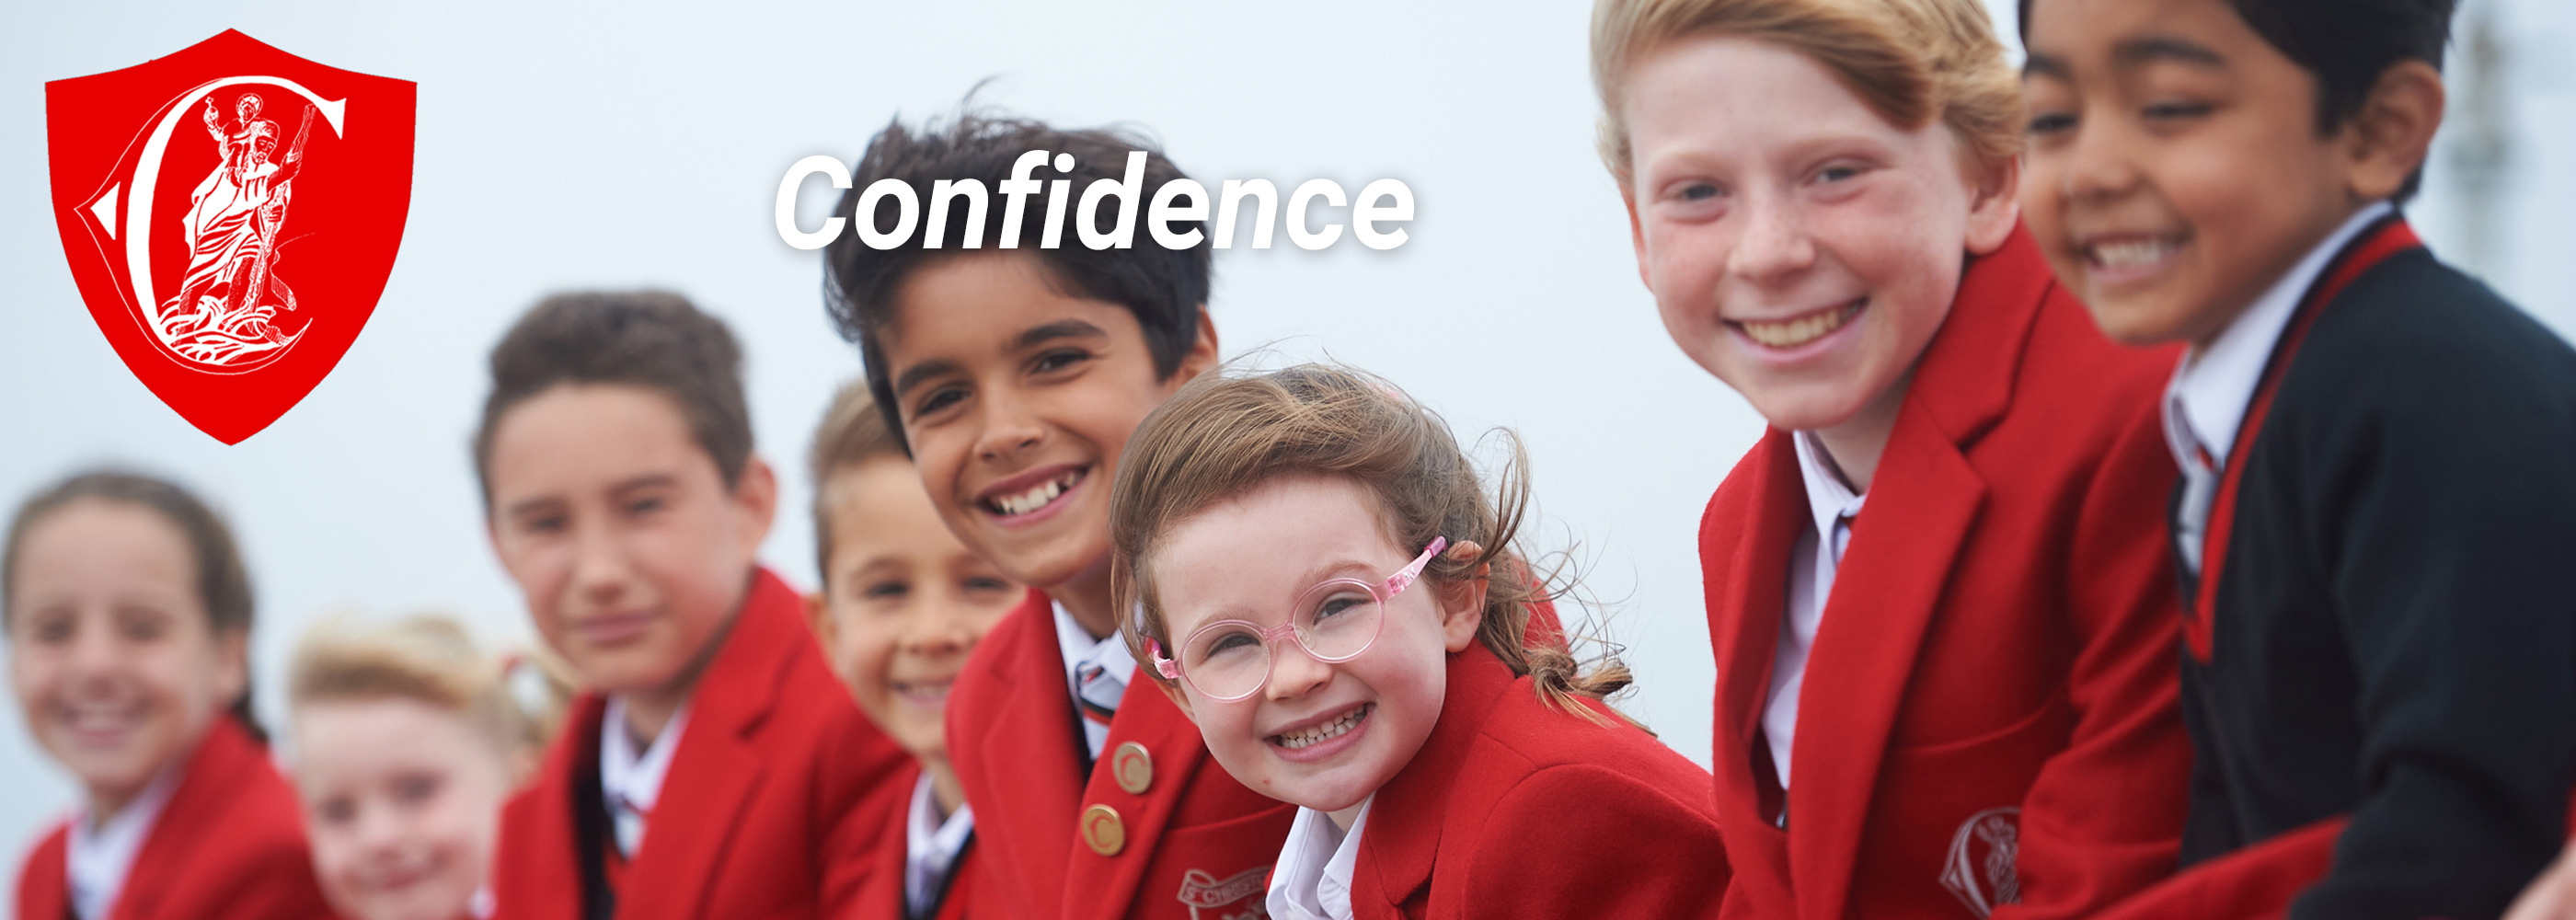 Confidence (text in image)